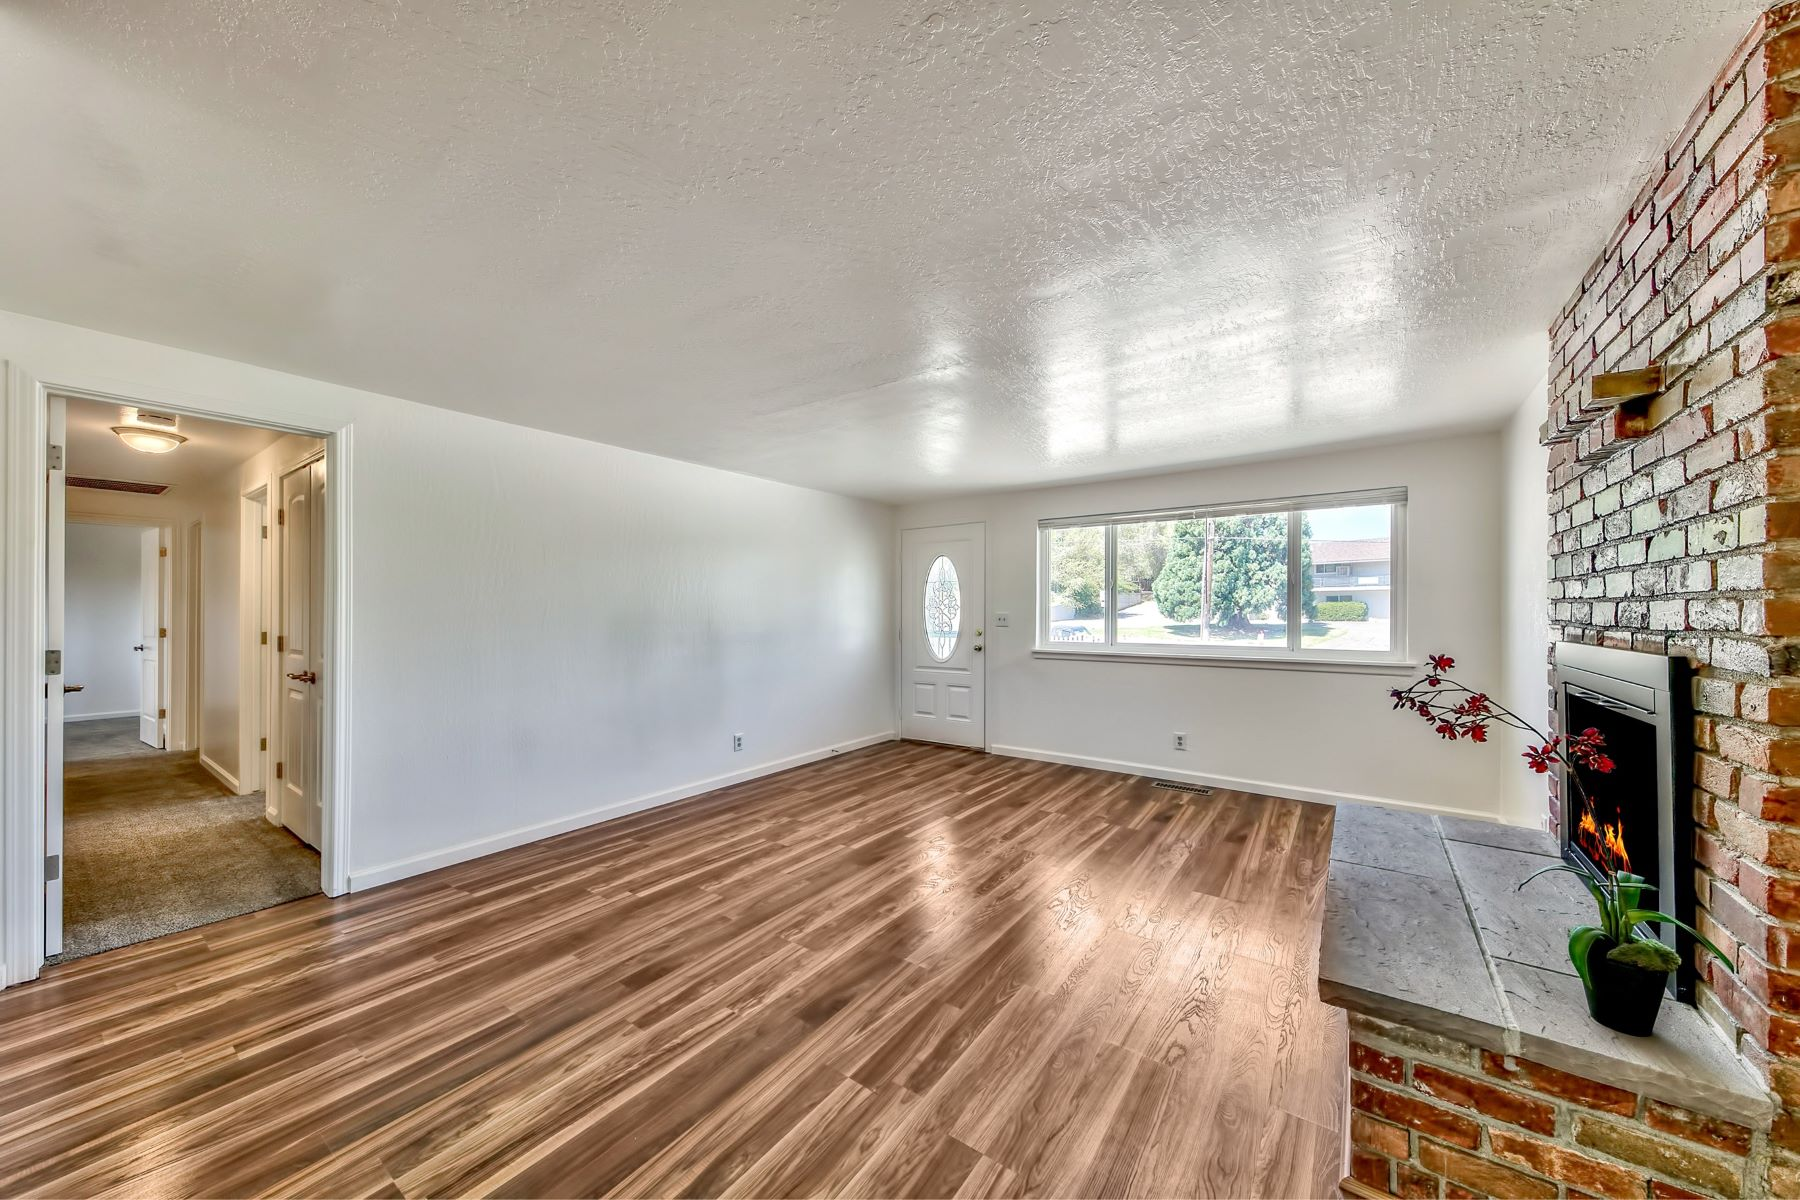 Additional photo for property listing at 2240 W 7th Street, Reno, Nevada 2240 W 7th Street Reno, Nevada 89503 United States